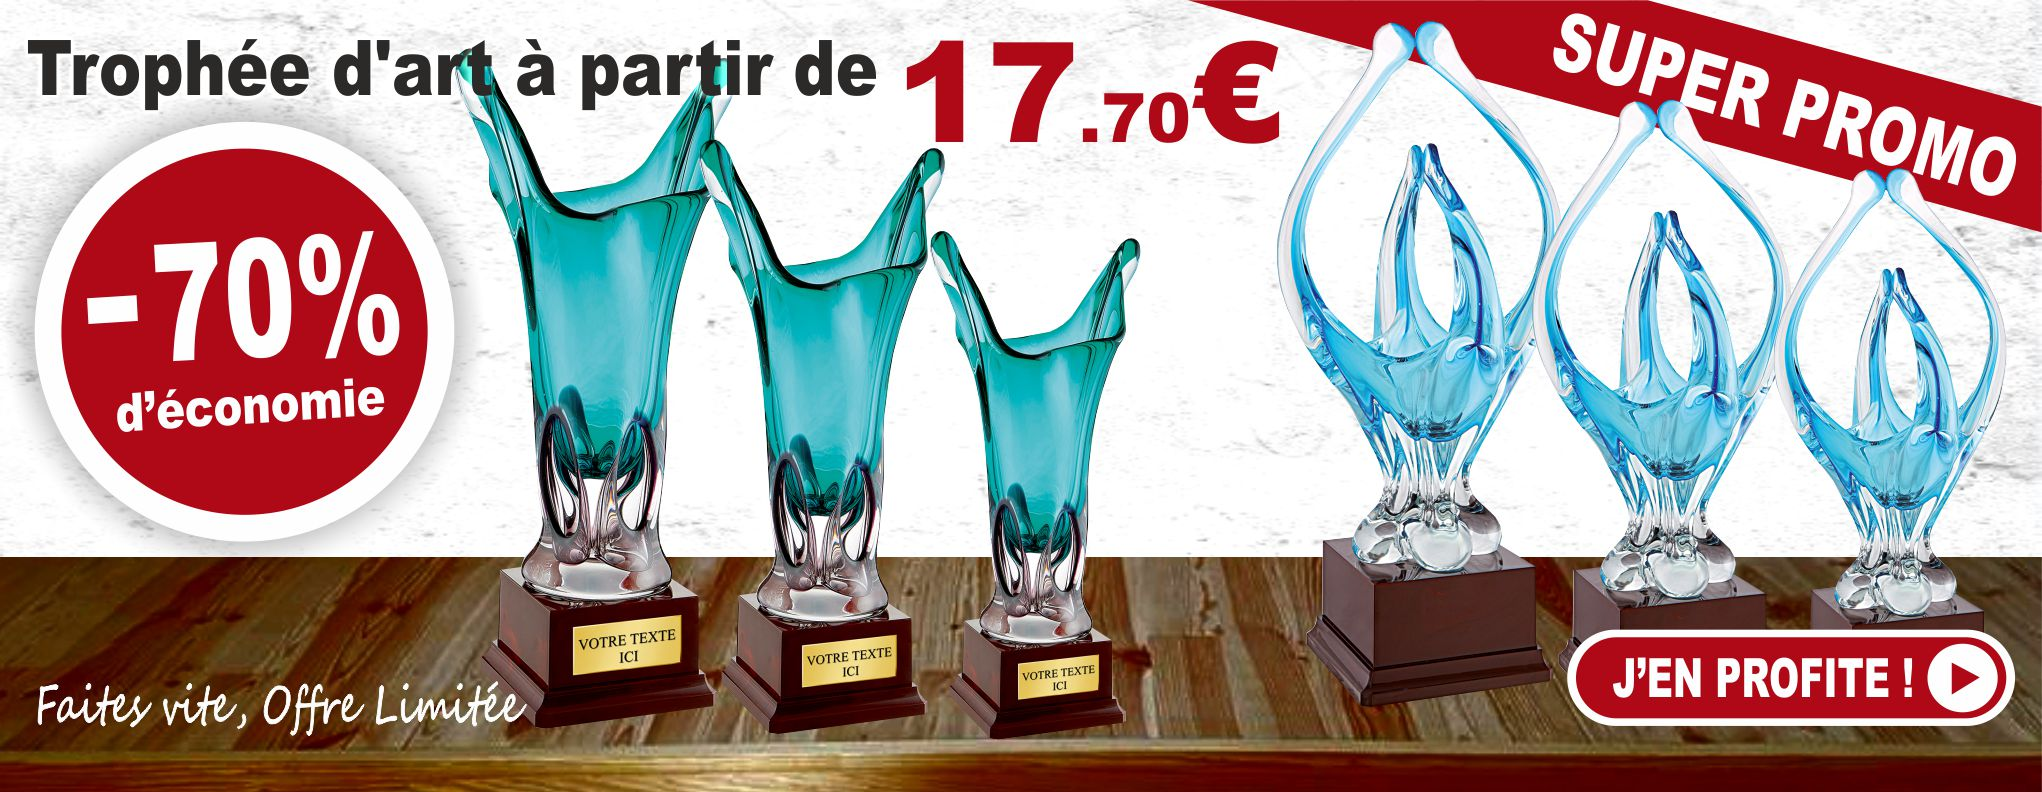 trophees d'art